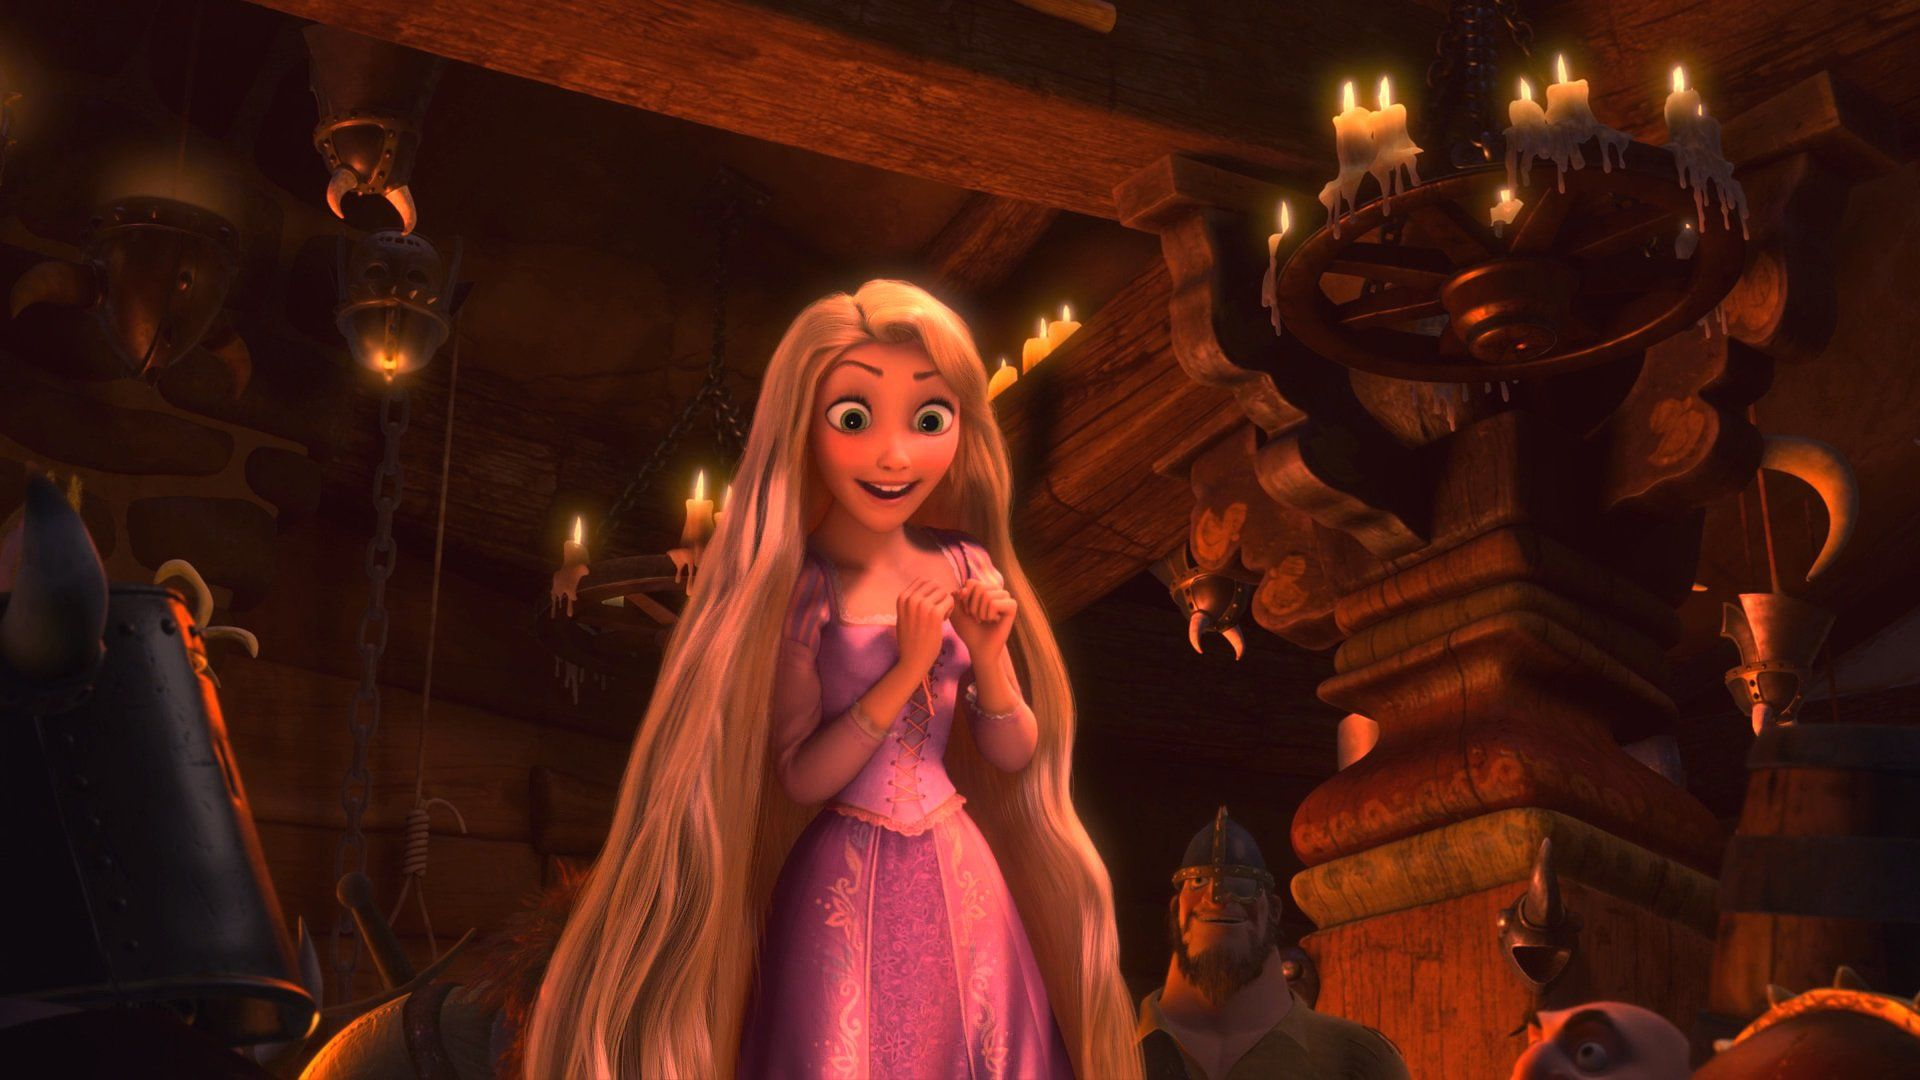 rapunzel tangled wallpapers 10whb #rapunzeltangledwallpapers